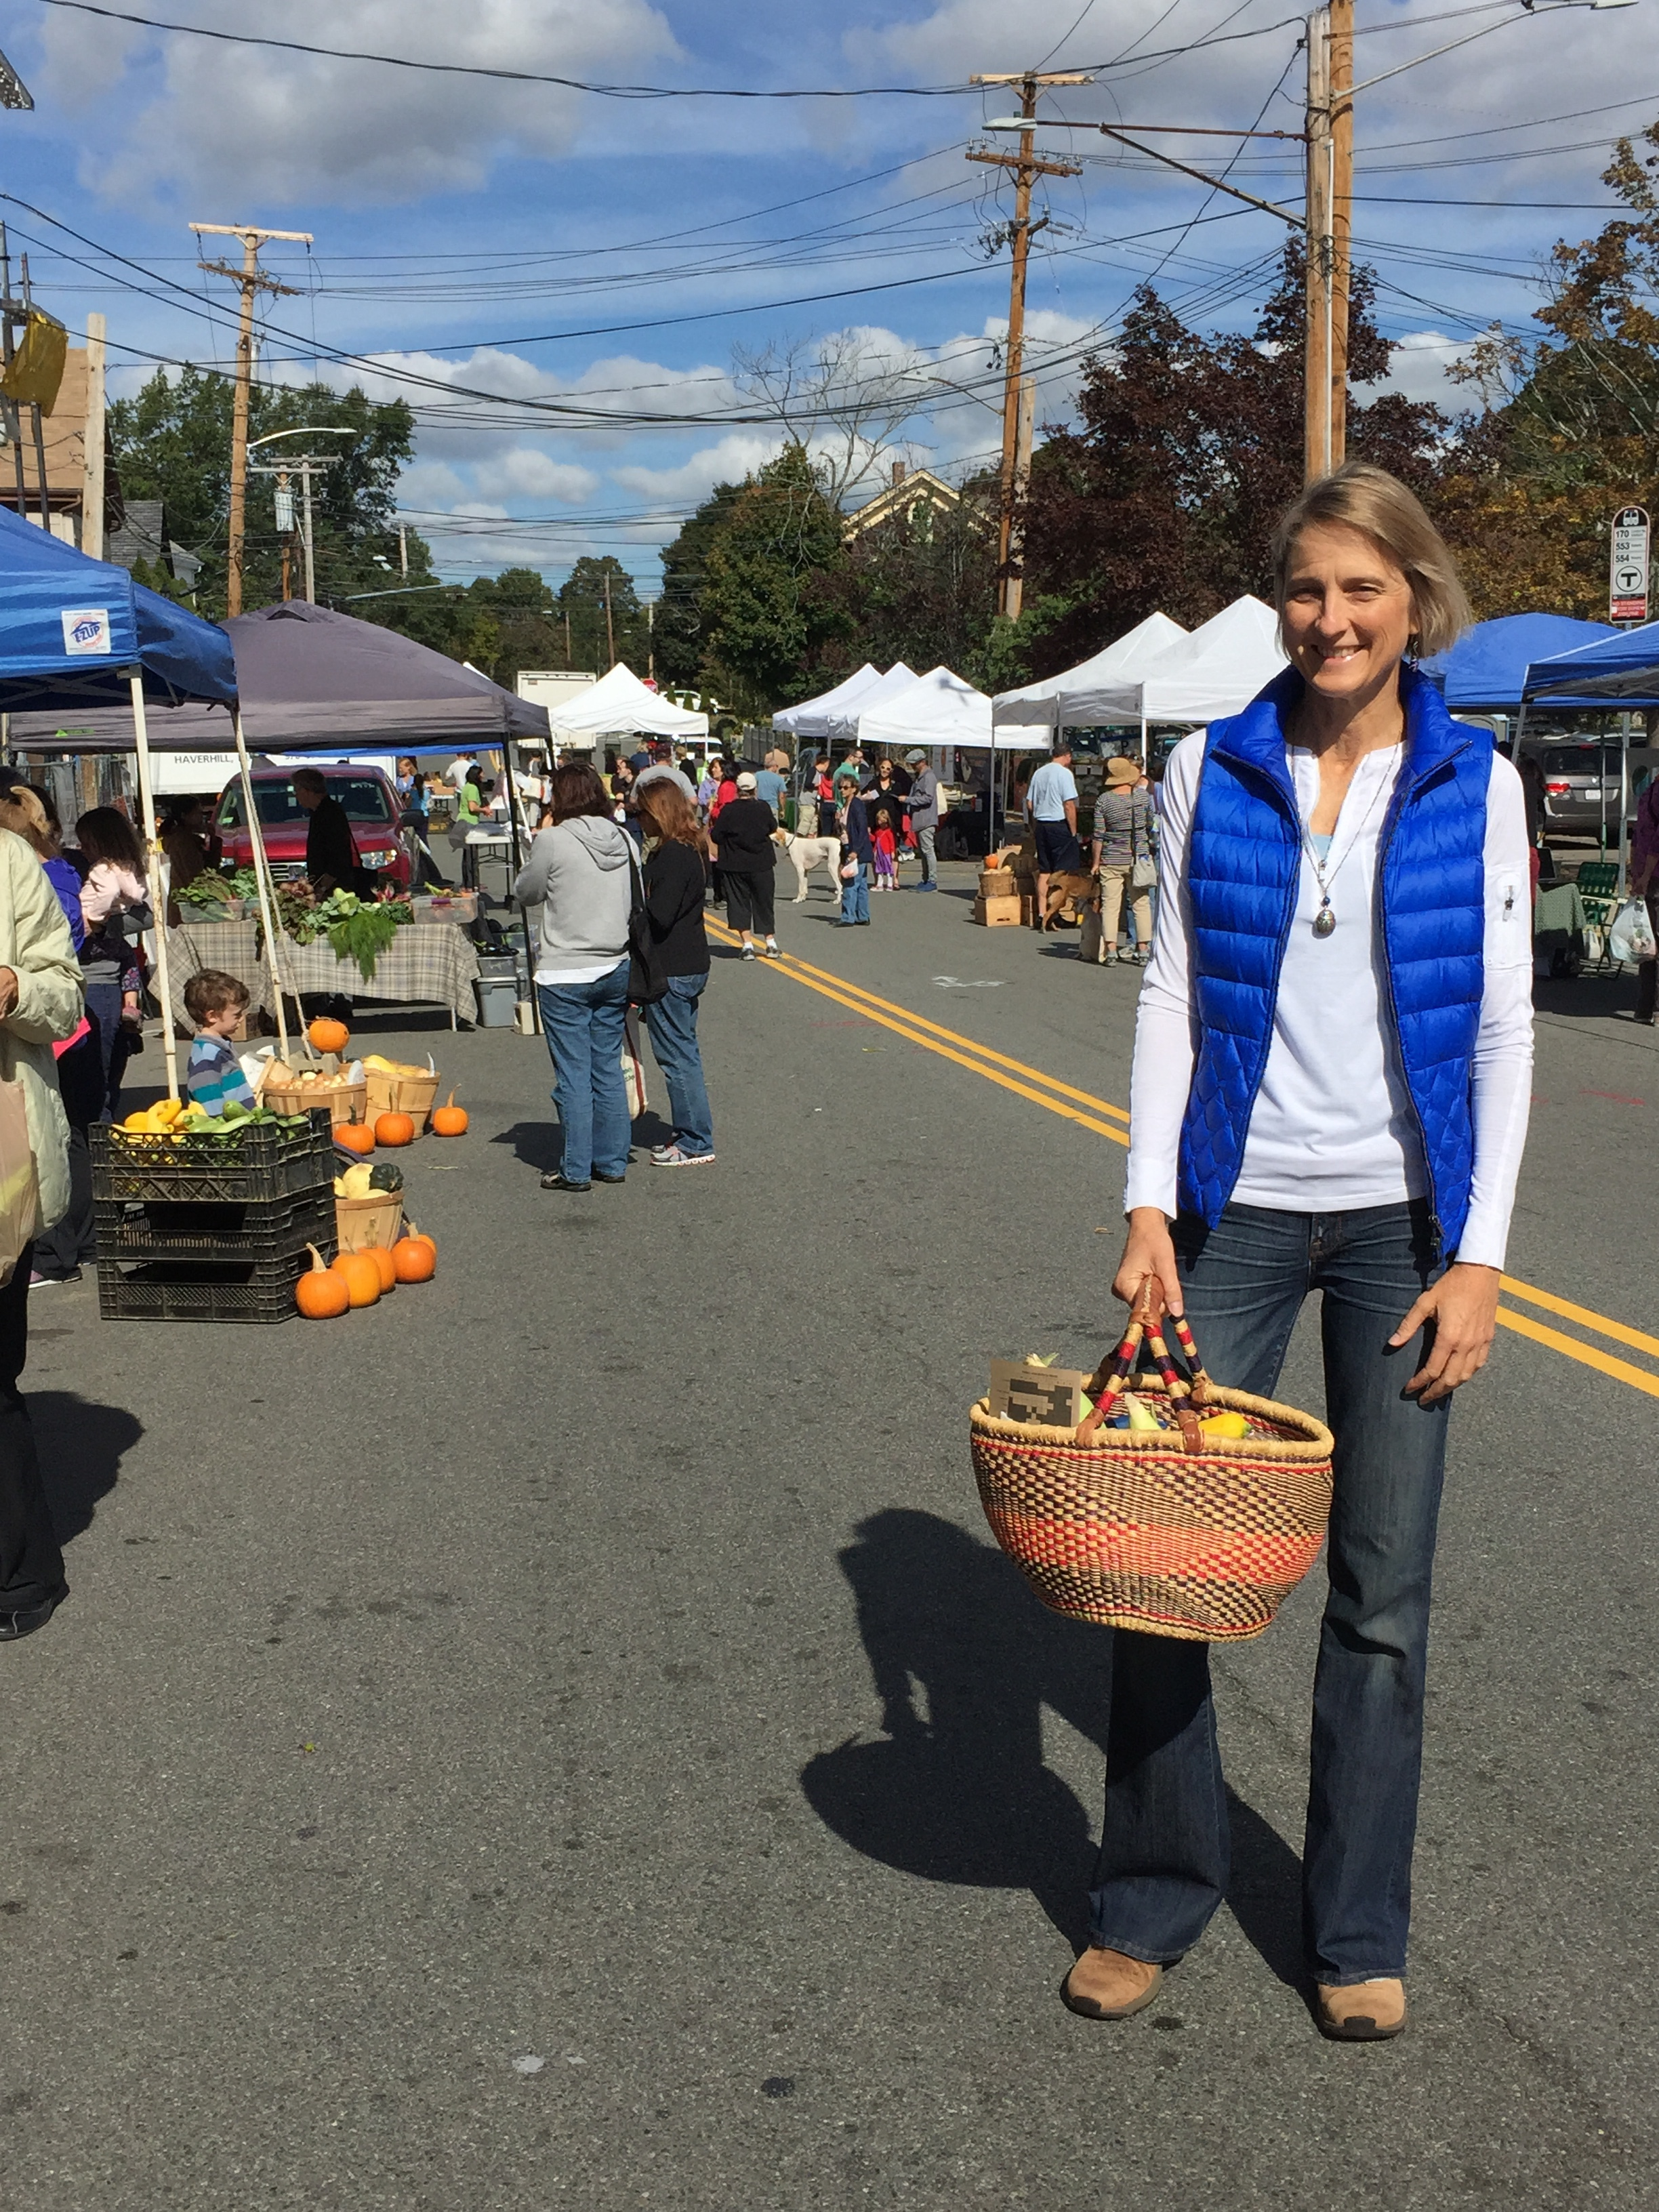 We can visit Farmers' markets too!